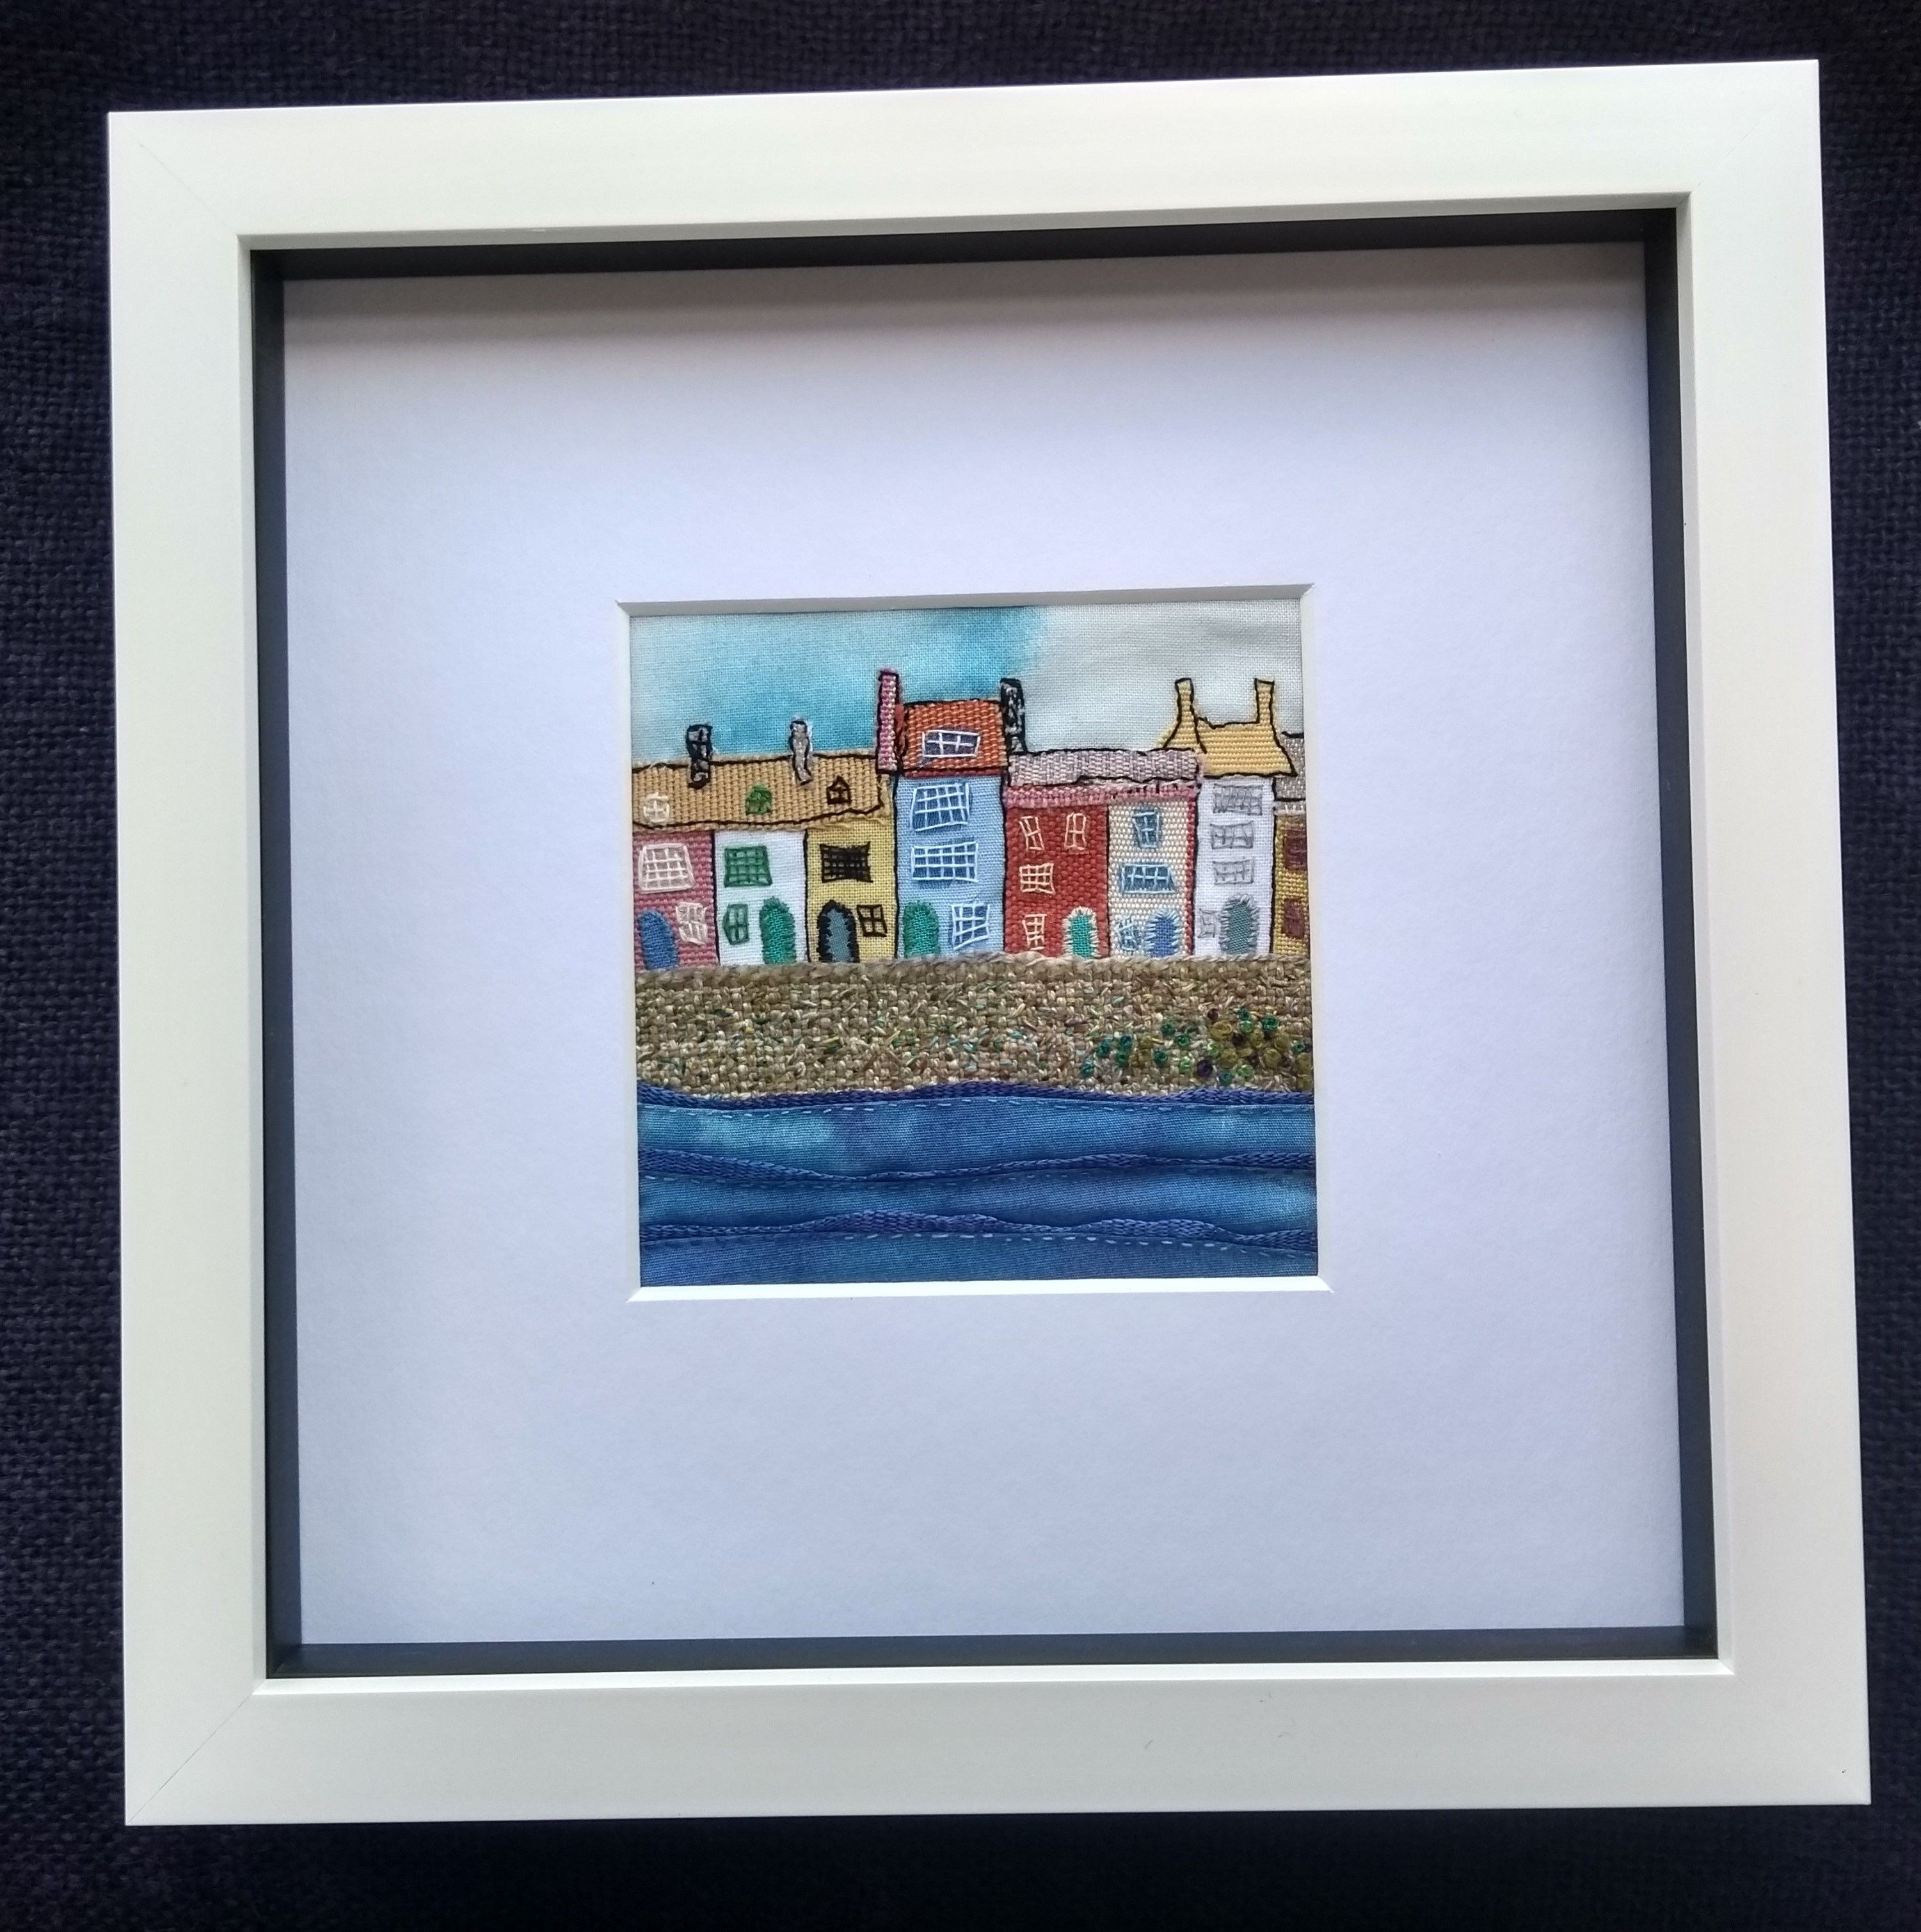 This 9cm x 9cm square of layered fabric and stitch is titled 'Harbourside Houses'.  Available with or without mount and frame.  #textileartist #fibreartist #textileart #embroideryart #stitchedart #fabricartist #fibreart #handstitched #slowstitching #artforthehome #artforsale #buyart #buyartonline #etsyshop #etsyseller #miniclothtales #affordableart #originalart #originalartforsale